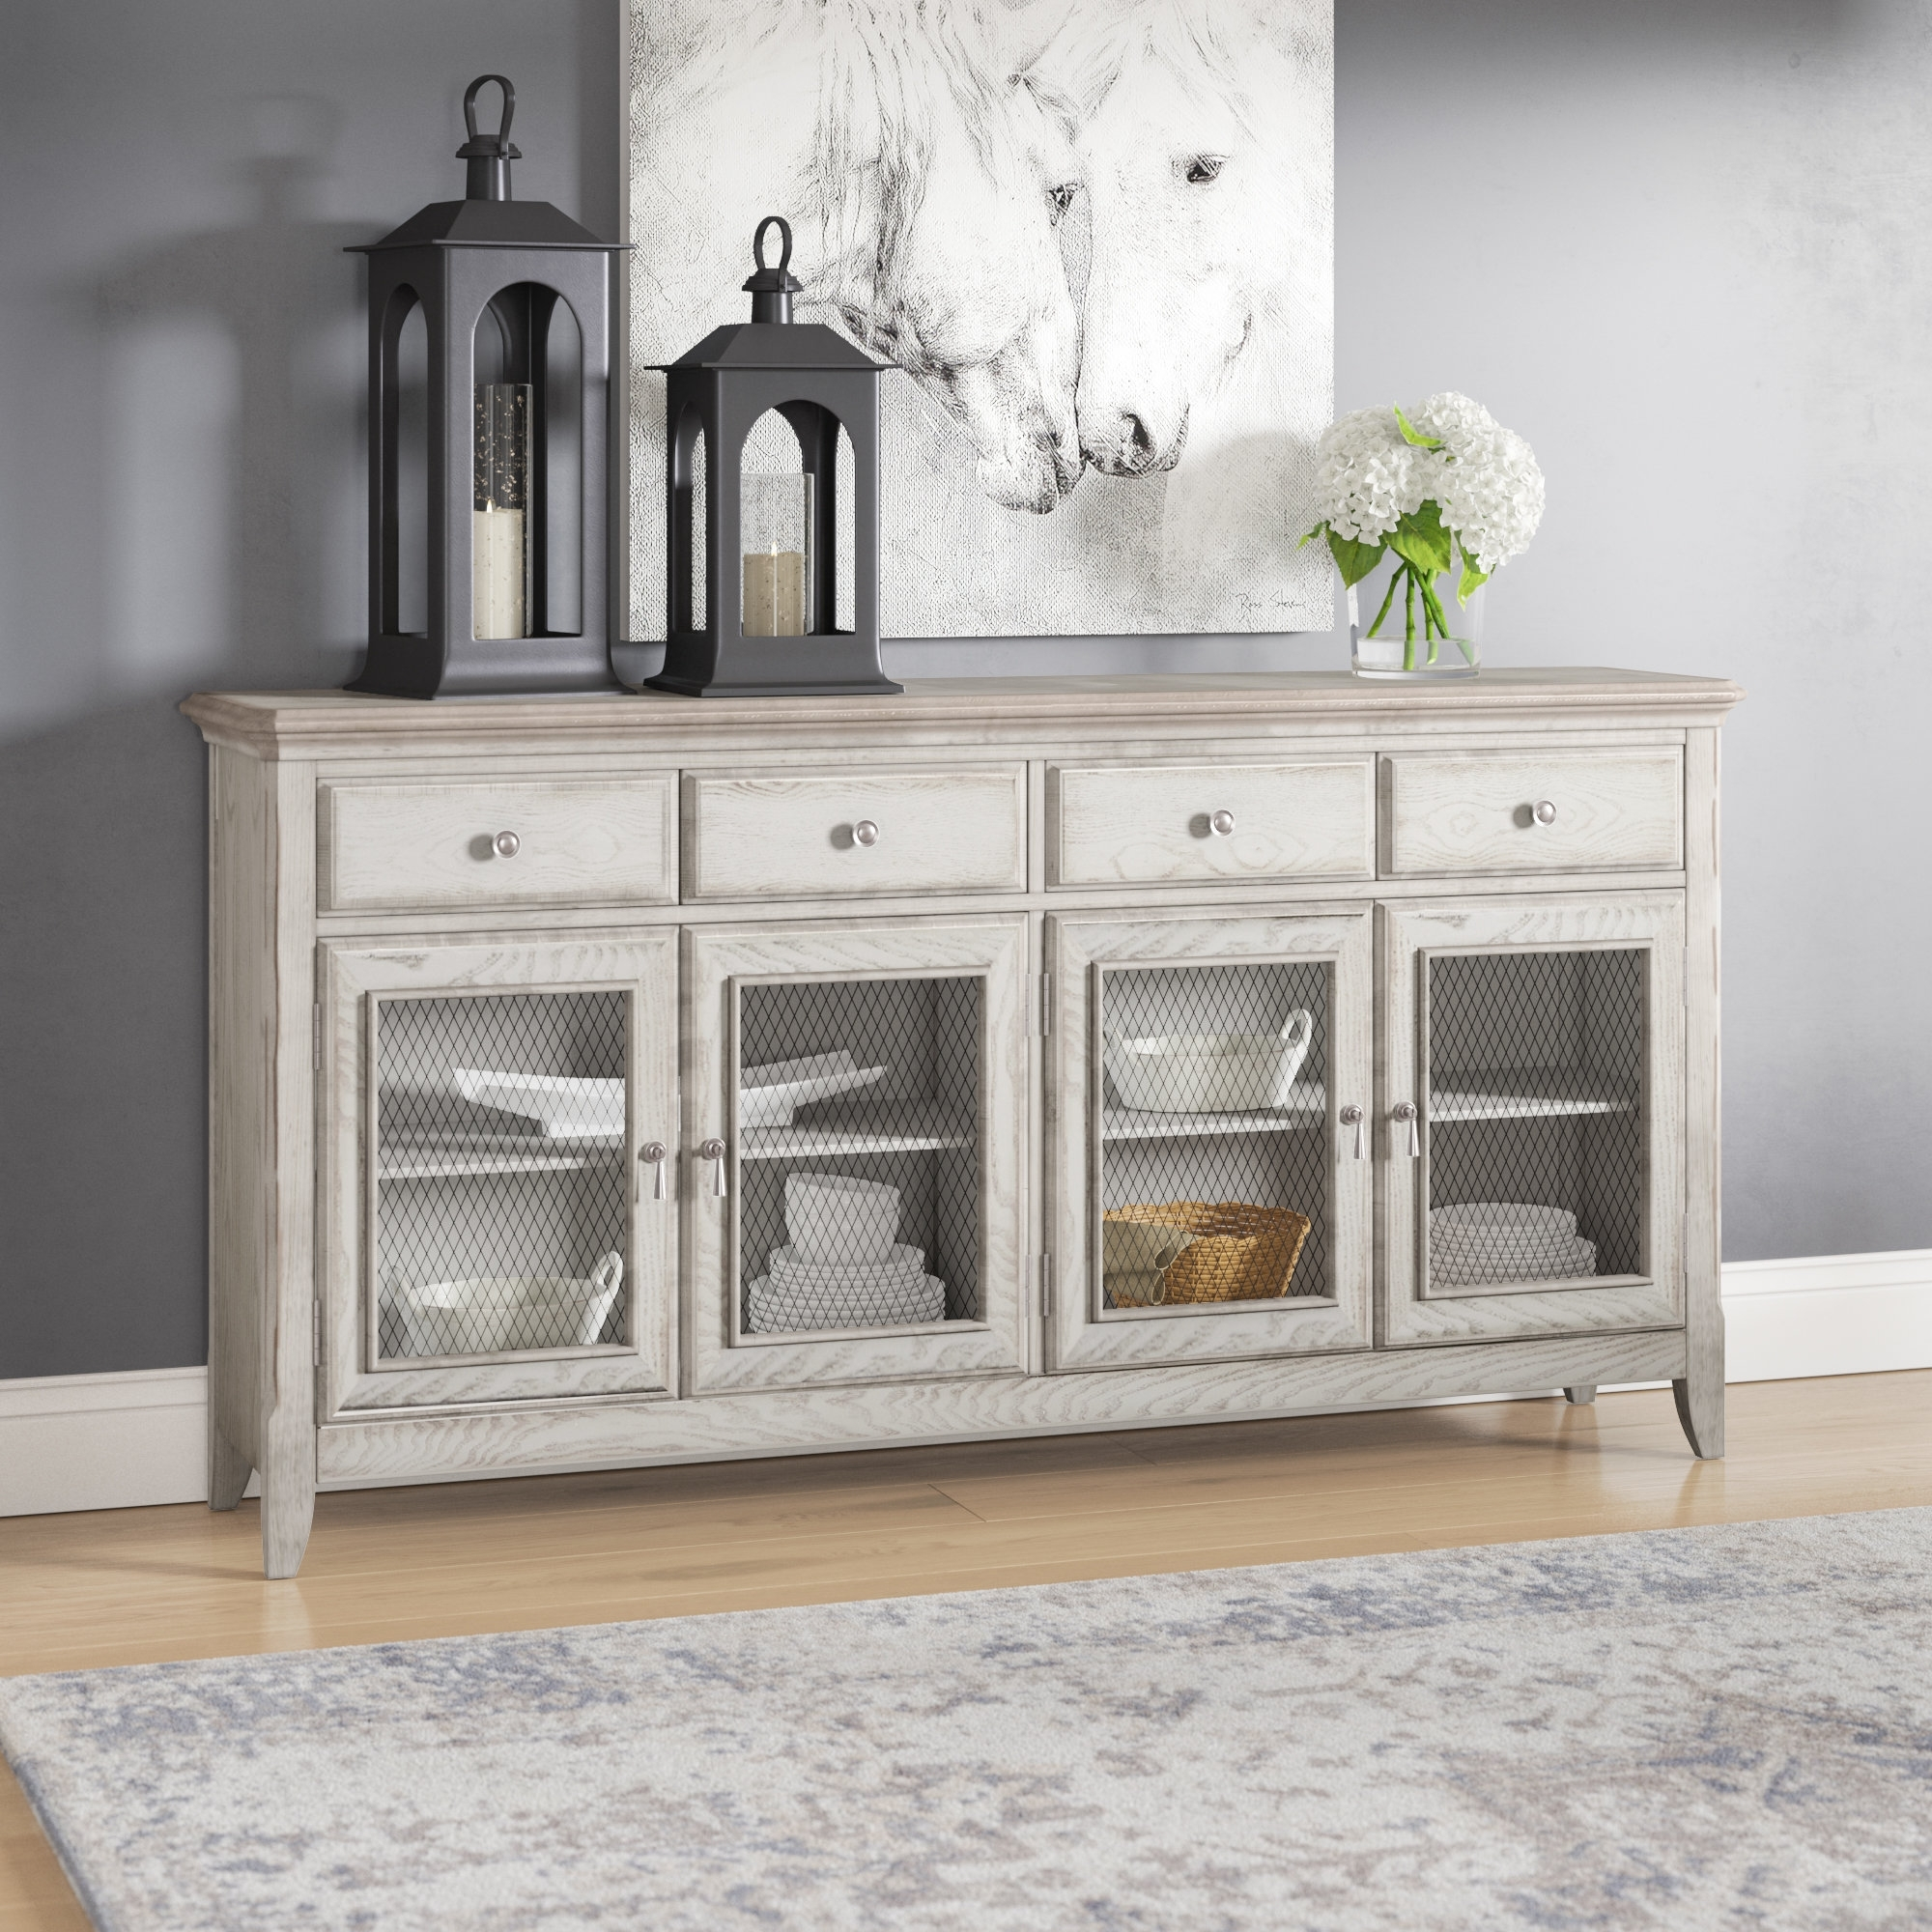 Laurel Foundry Modern Farmhouse Guerrera 4 Door Credenza With Wire within 4-Door 4-Drawer Metal Inserts Sideboards (Image 18 of 30)